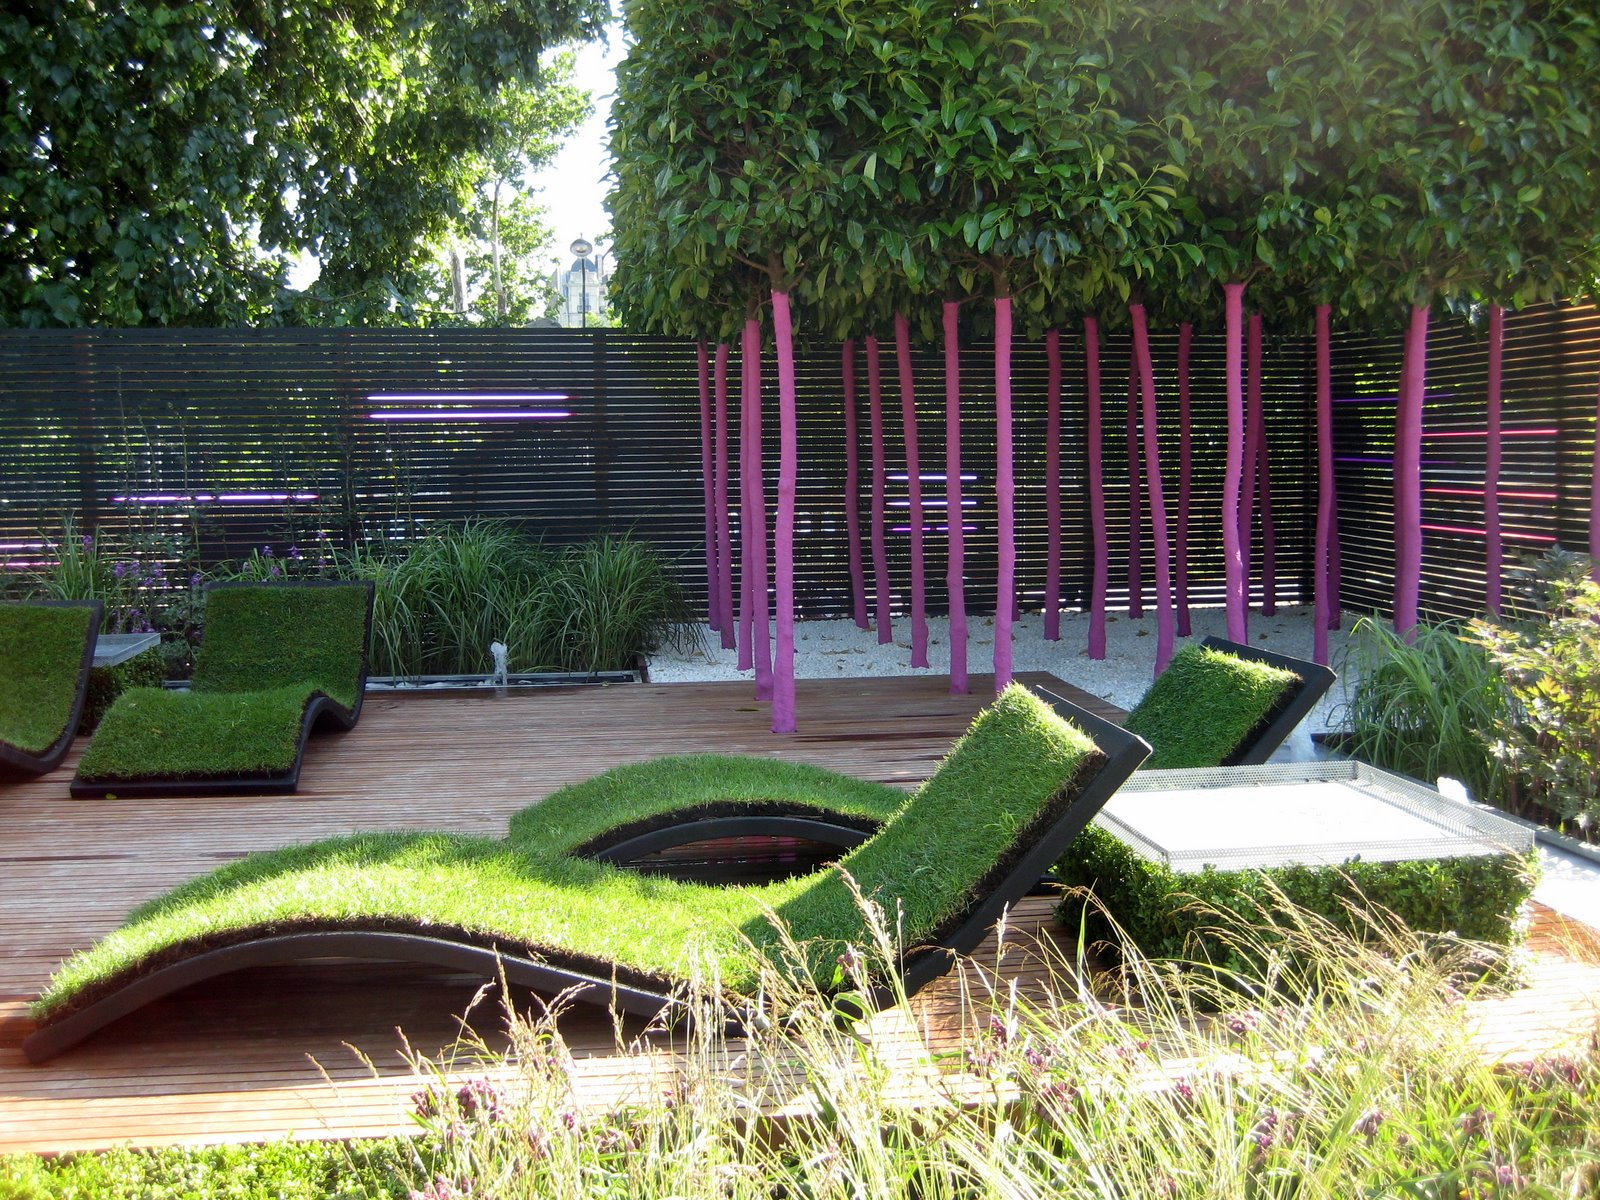 Jardins jardin how to cultivate an urban garden french for Architecture jardin